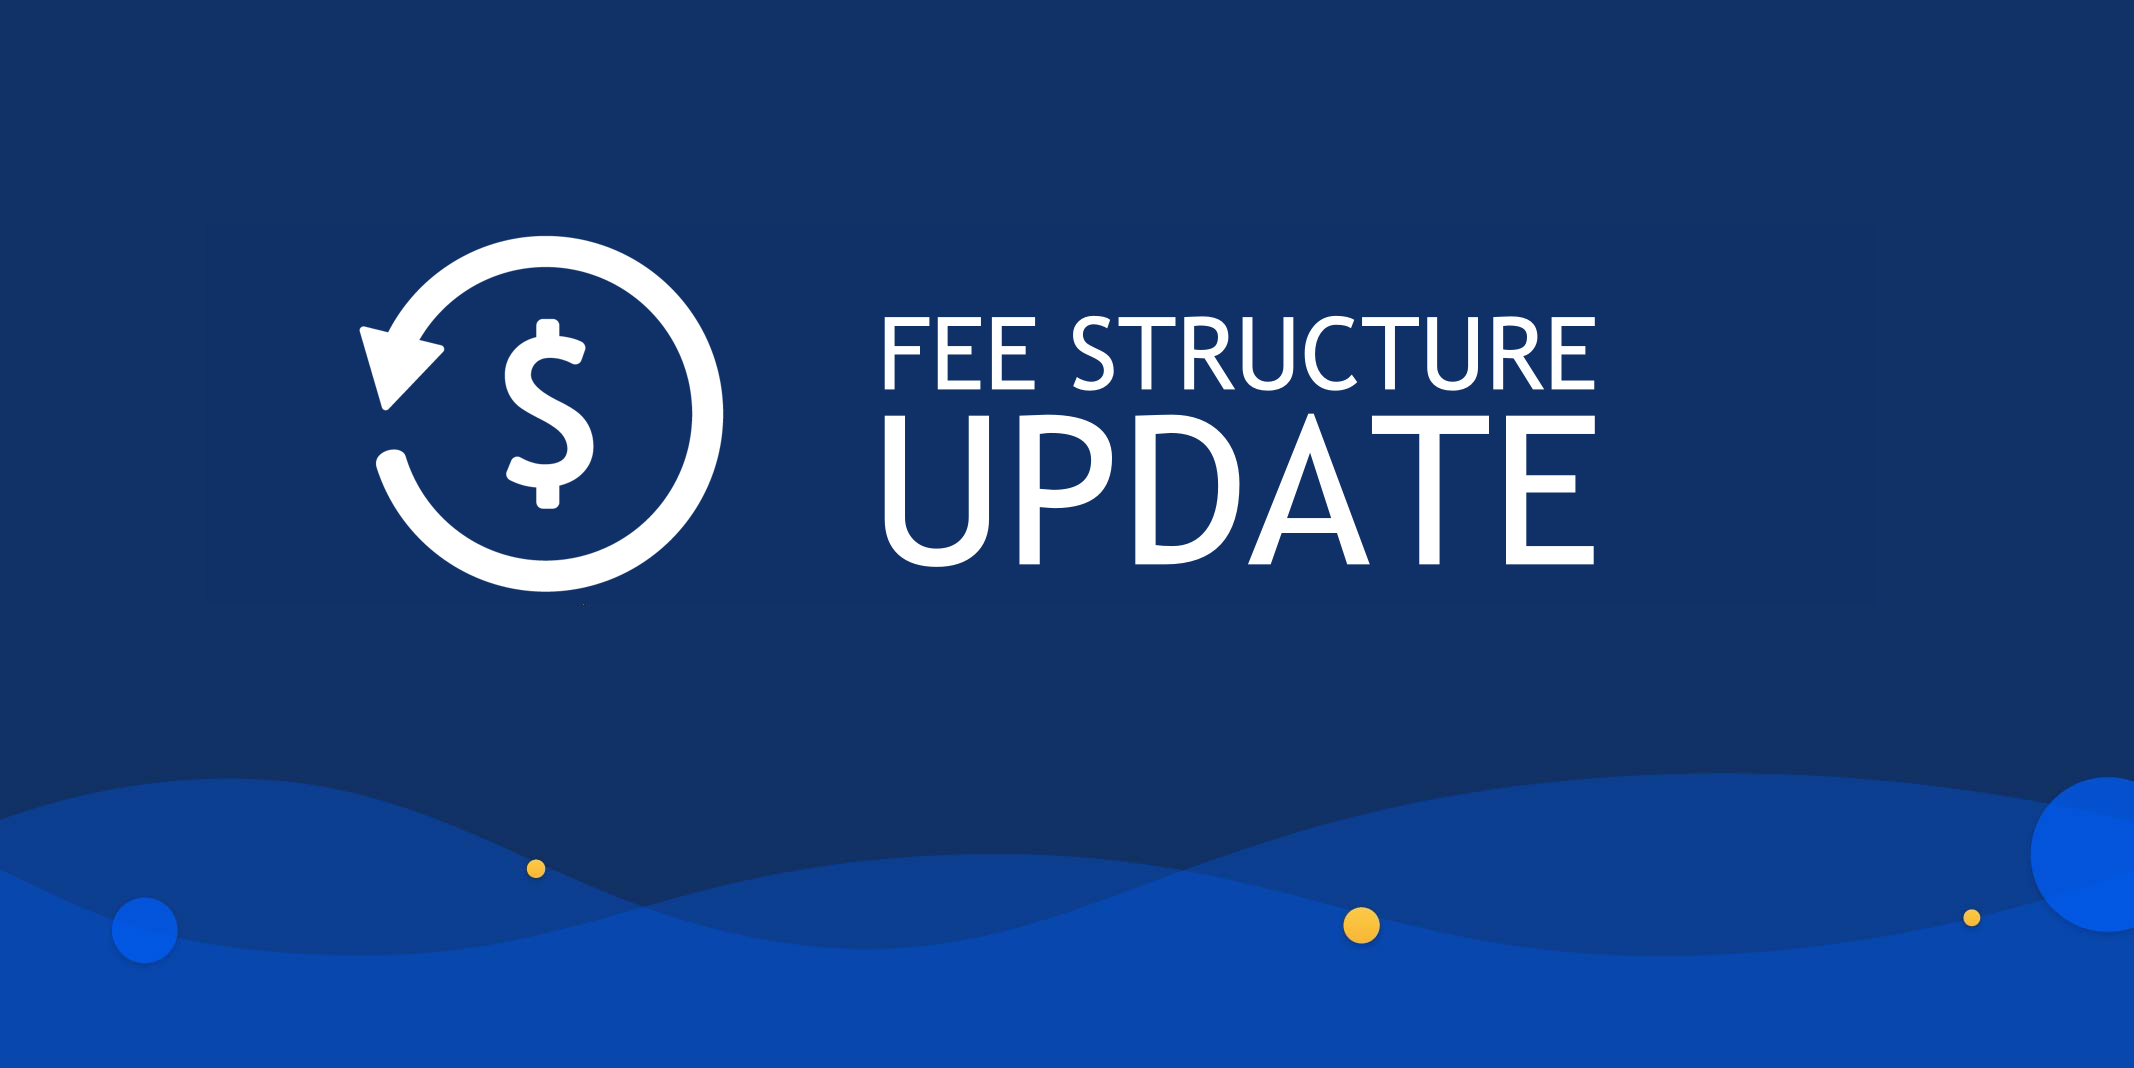 Fee_Structure_Update_Image.png